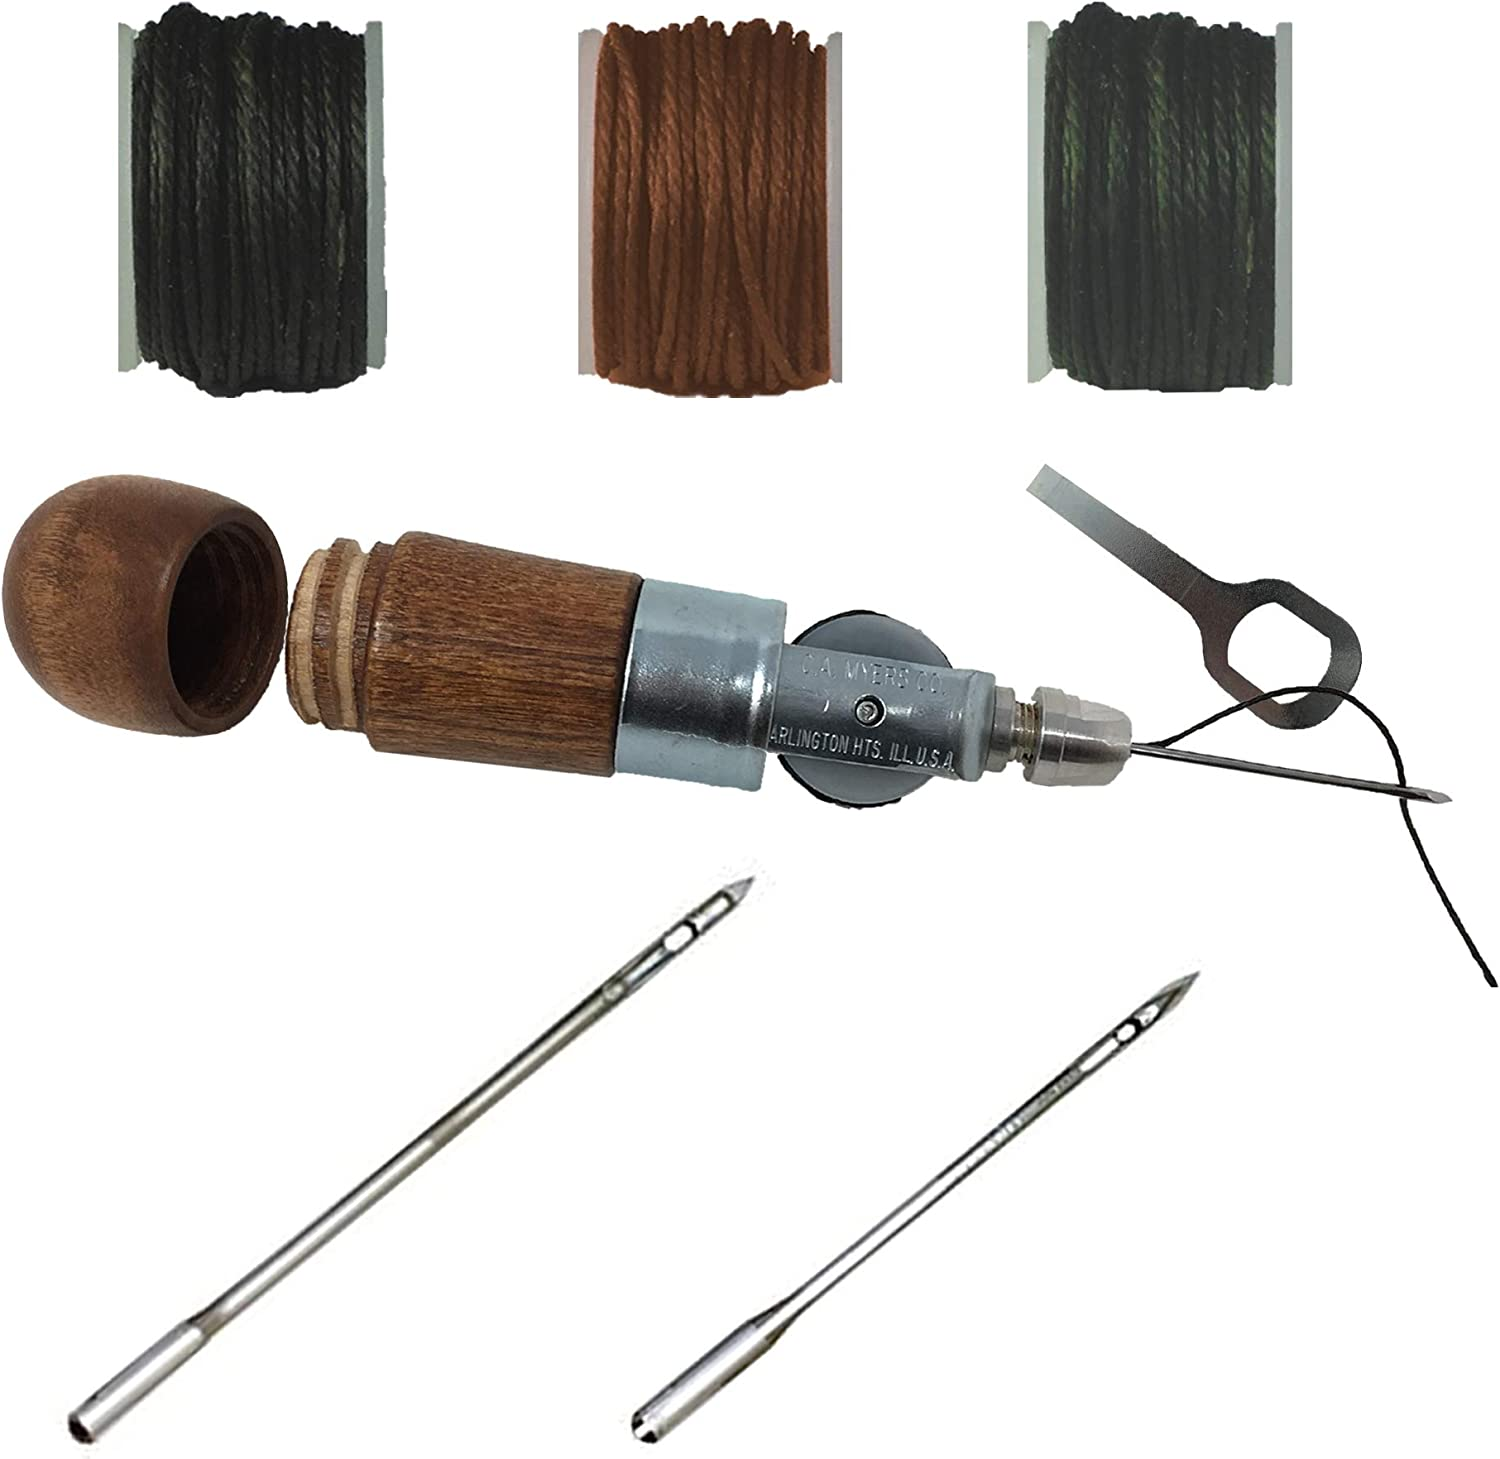 Leathercraft Automatic Lock Sewing Awl 4 Spare Reel Waxed Cotton Thread Tool Set